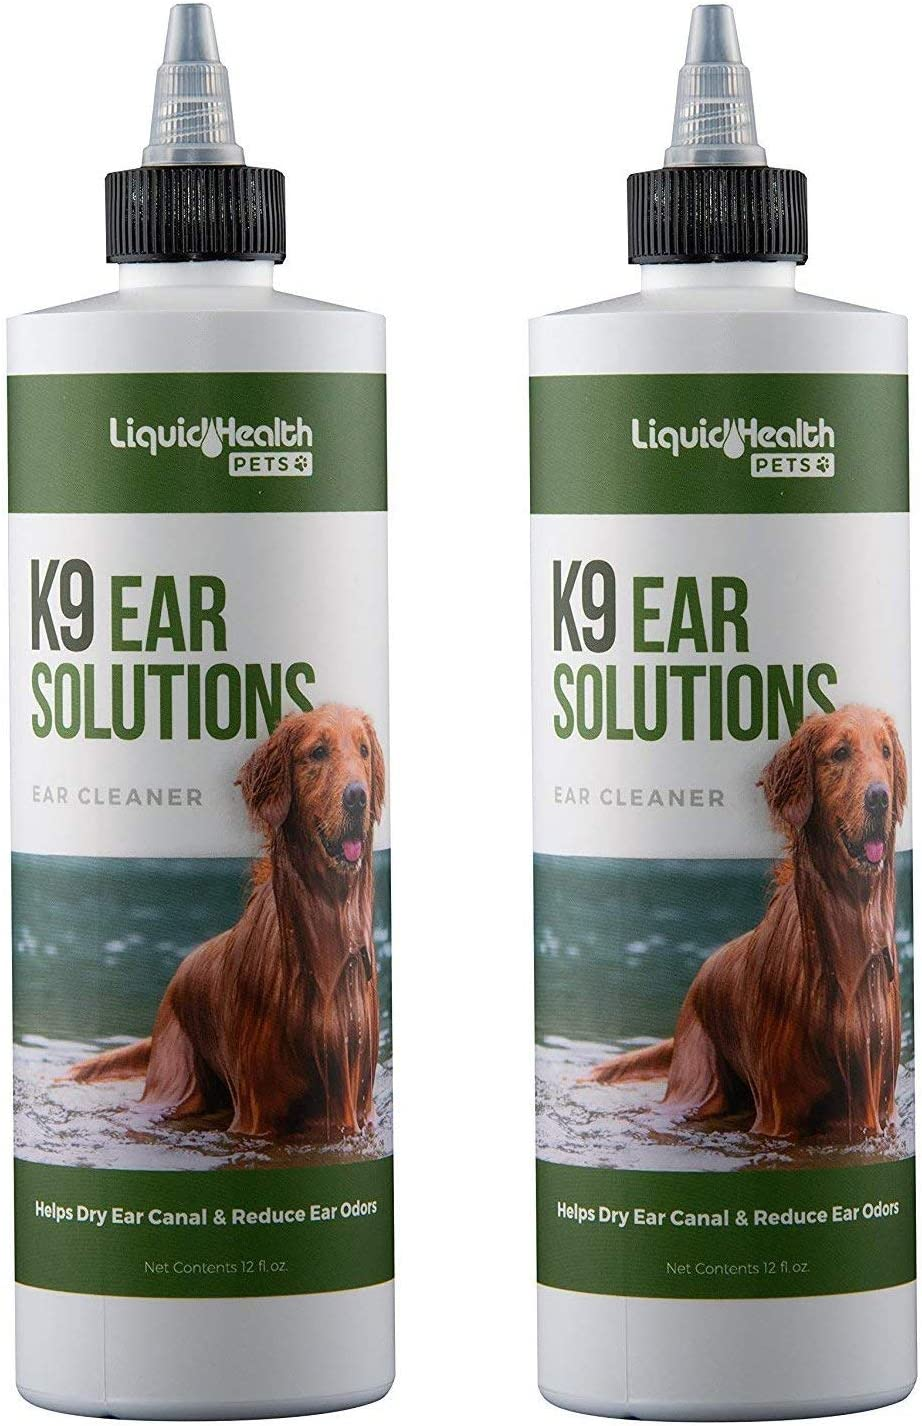 Liquid Health K9 Ear Solutions for Animals